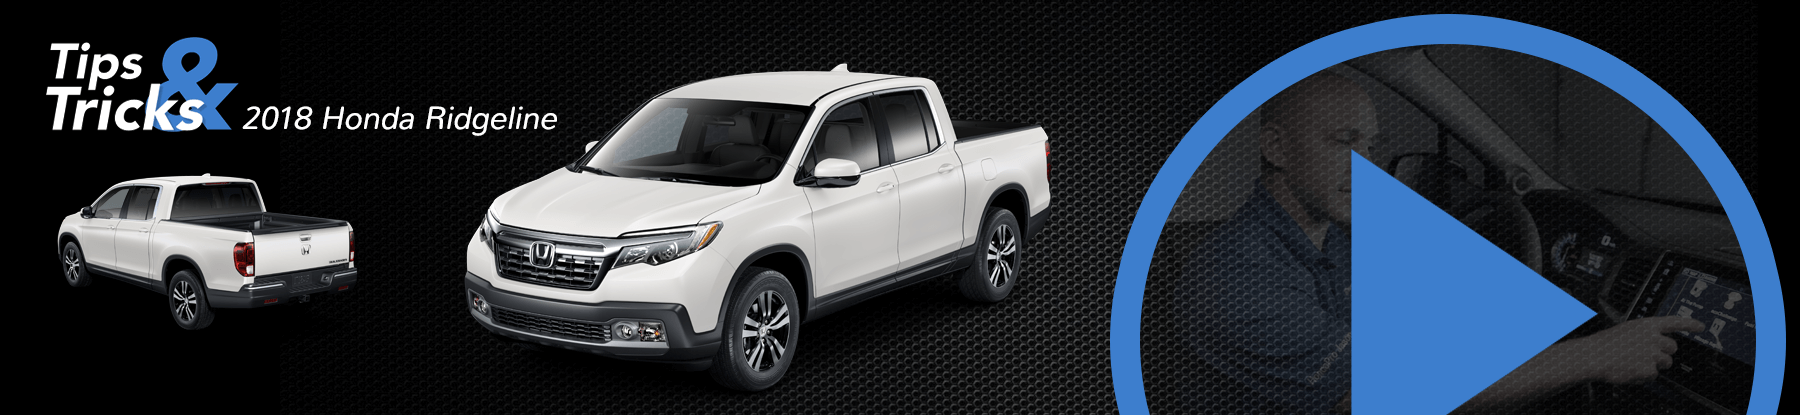 2018 Honda Ridgeline Tips and Tricks